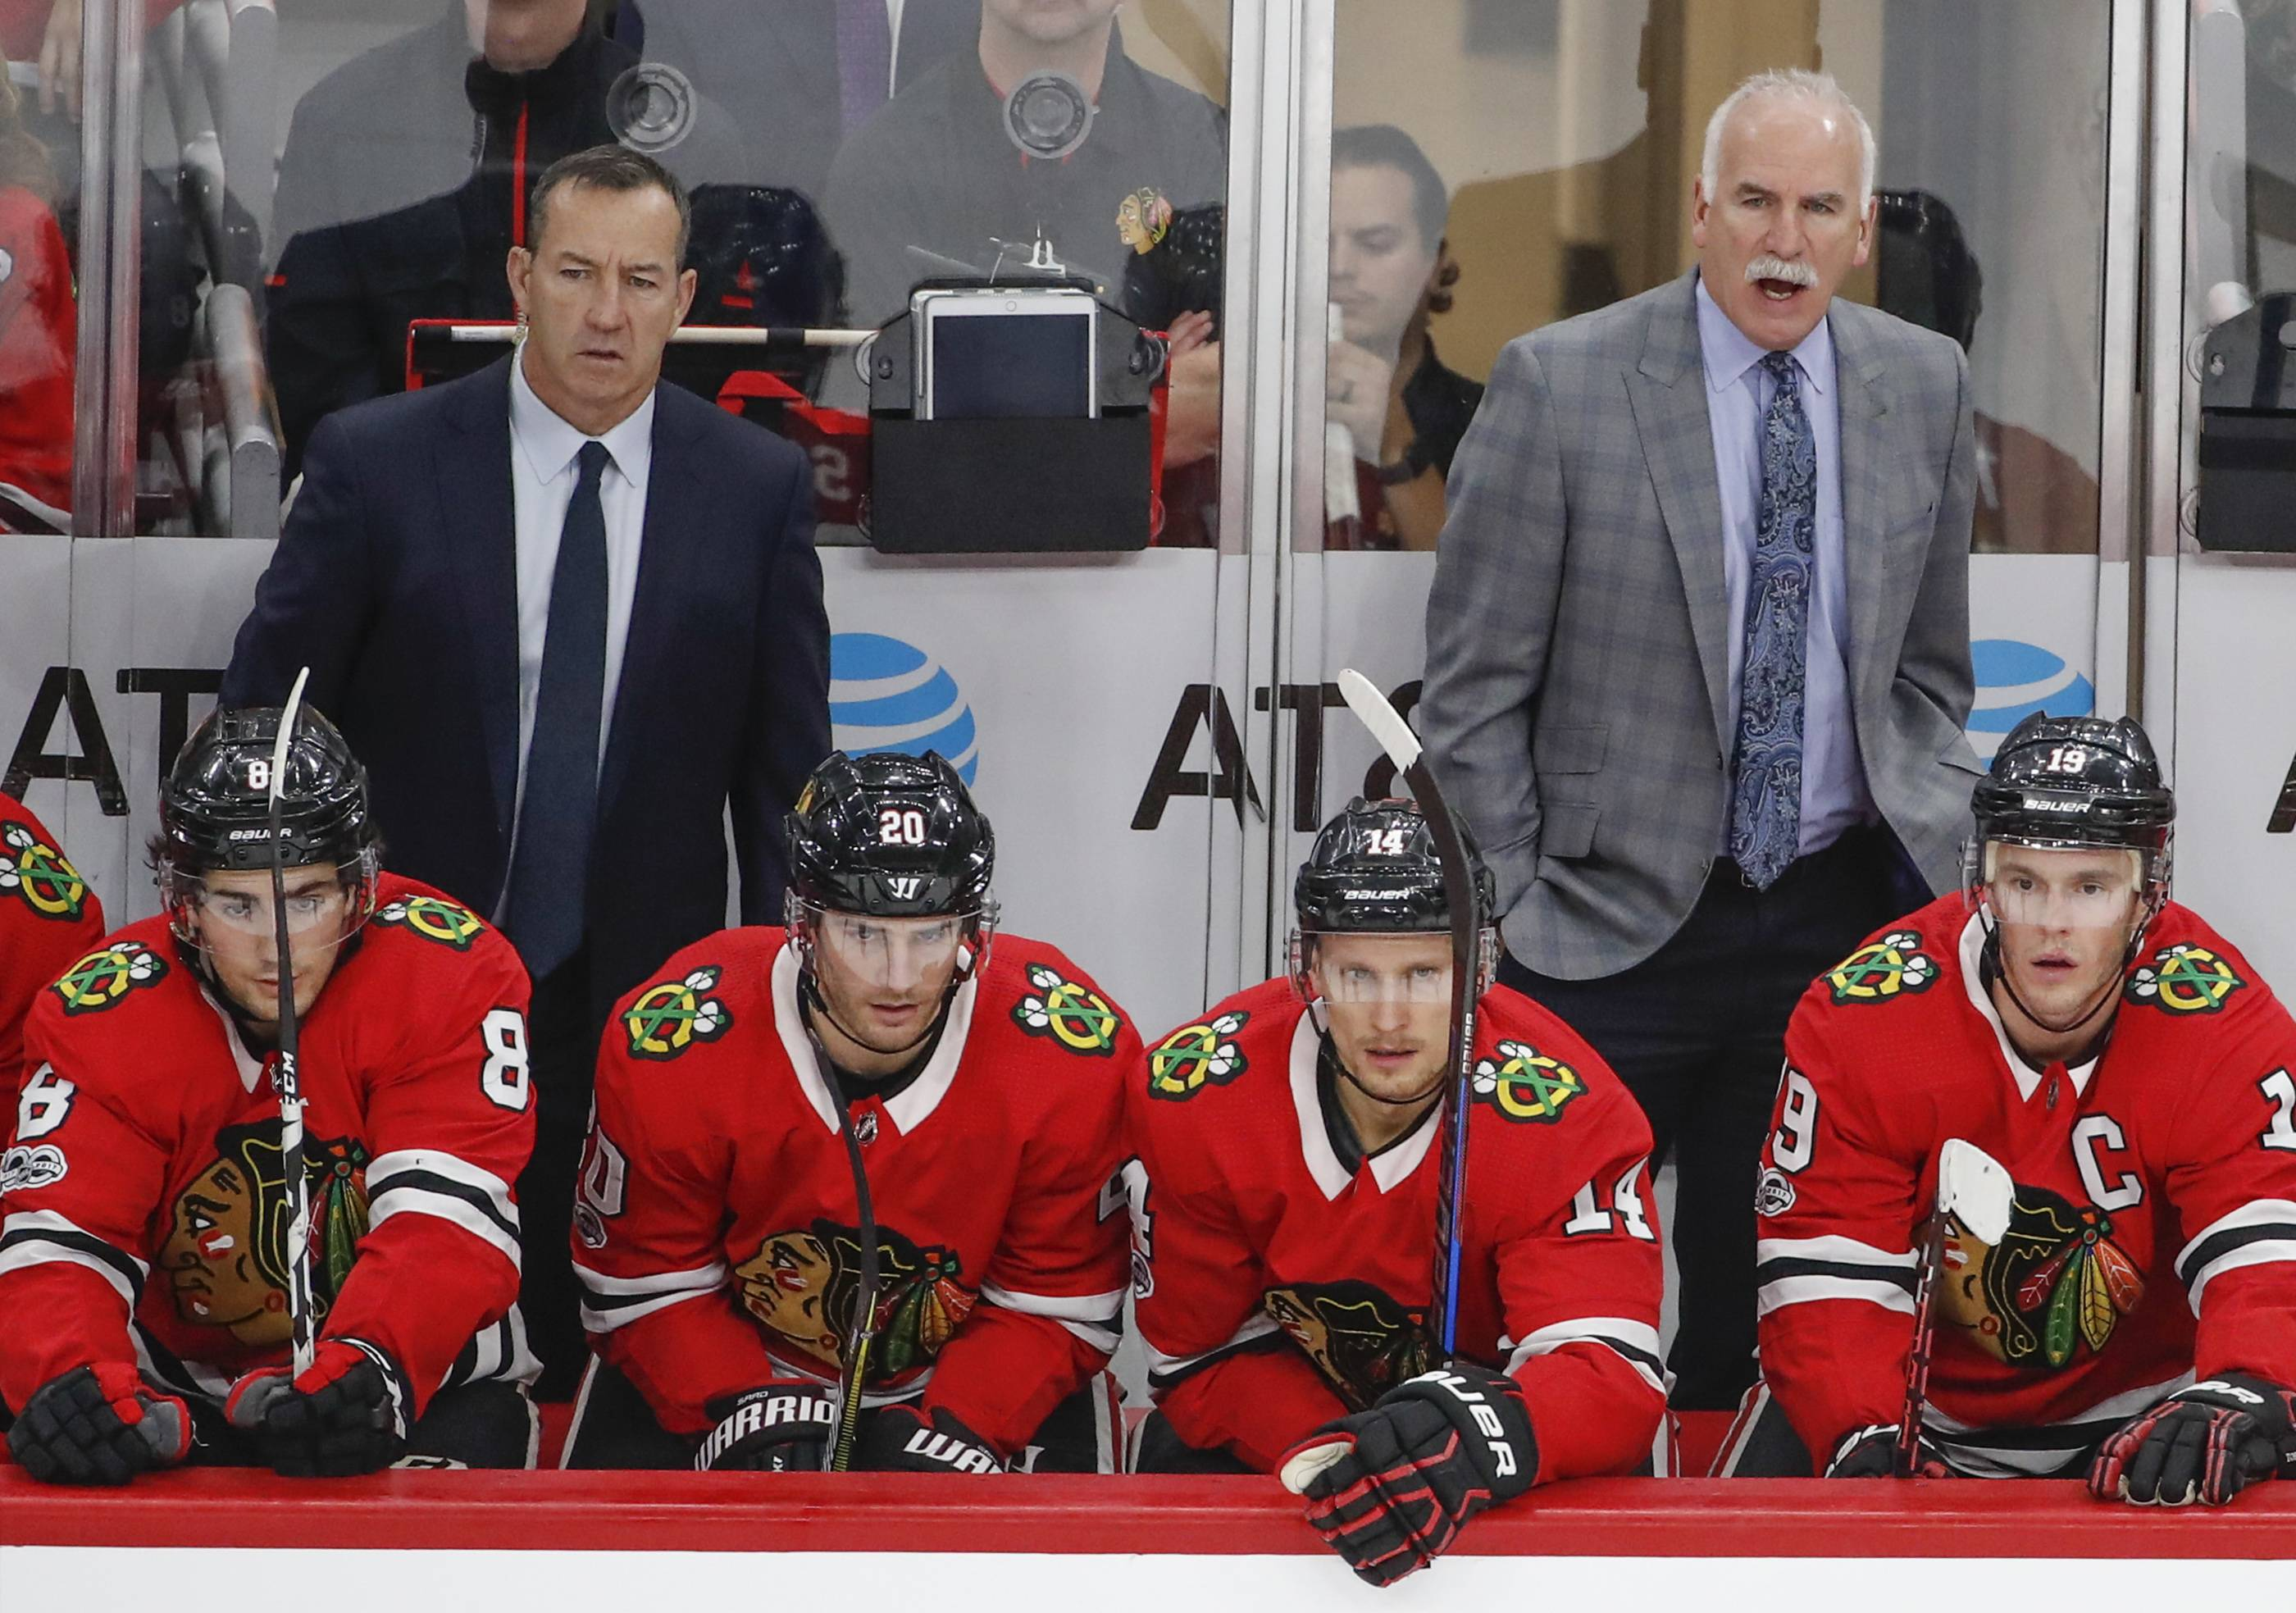 Chicago Blackhawks head coach Joel Quenneville made some major line changes Tuesday at practice in hopes of jump-starting the team's struggling offense.